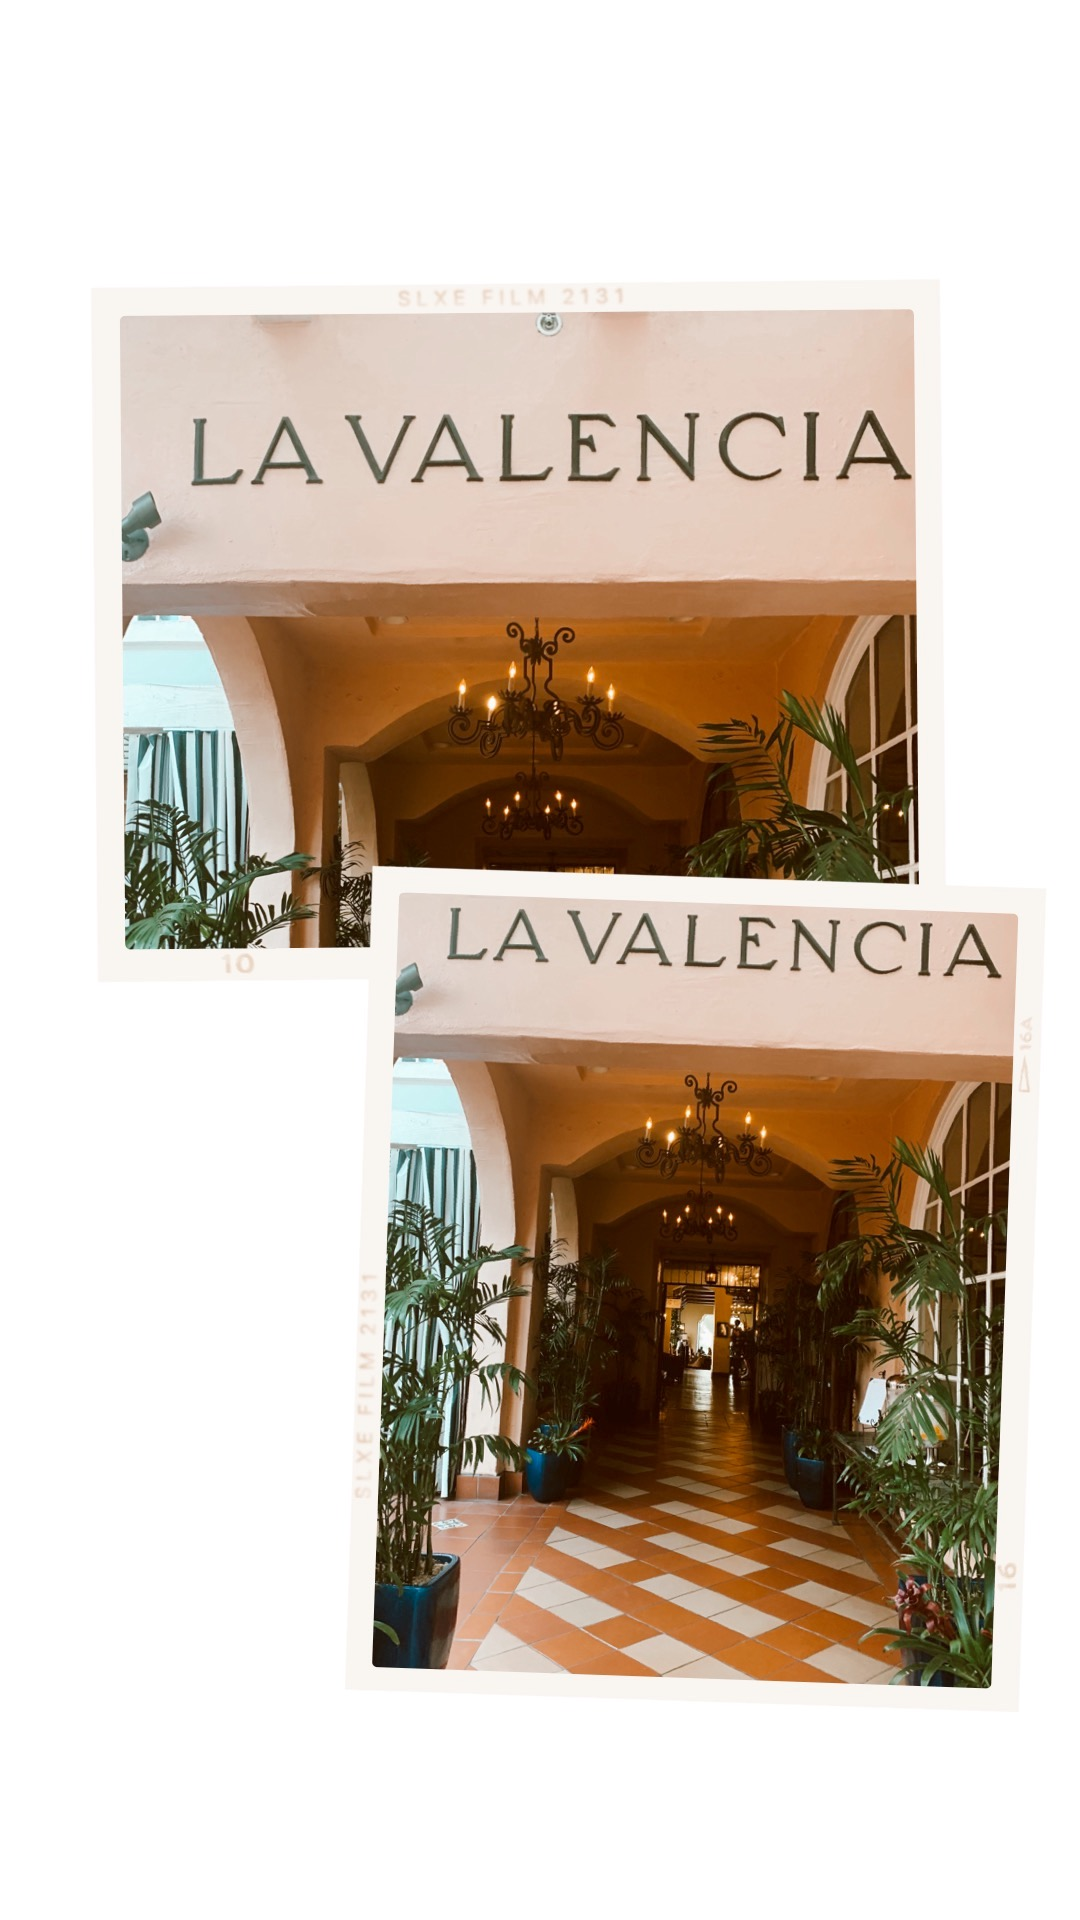 la valencia hallway is a perfect place to eat in san diego